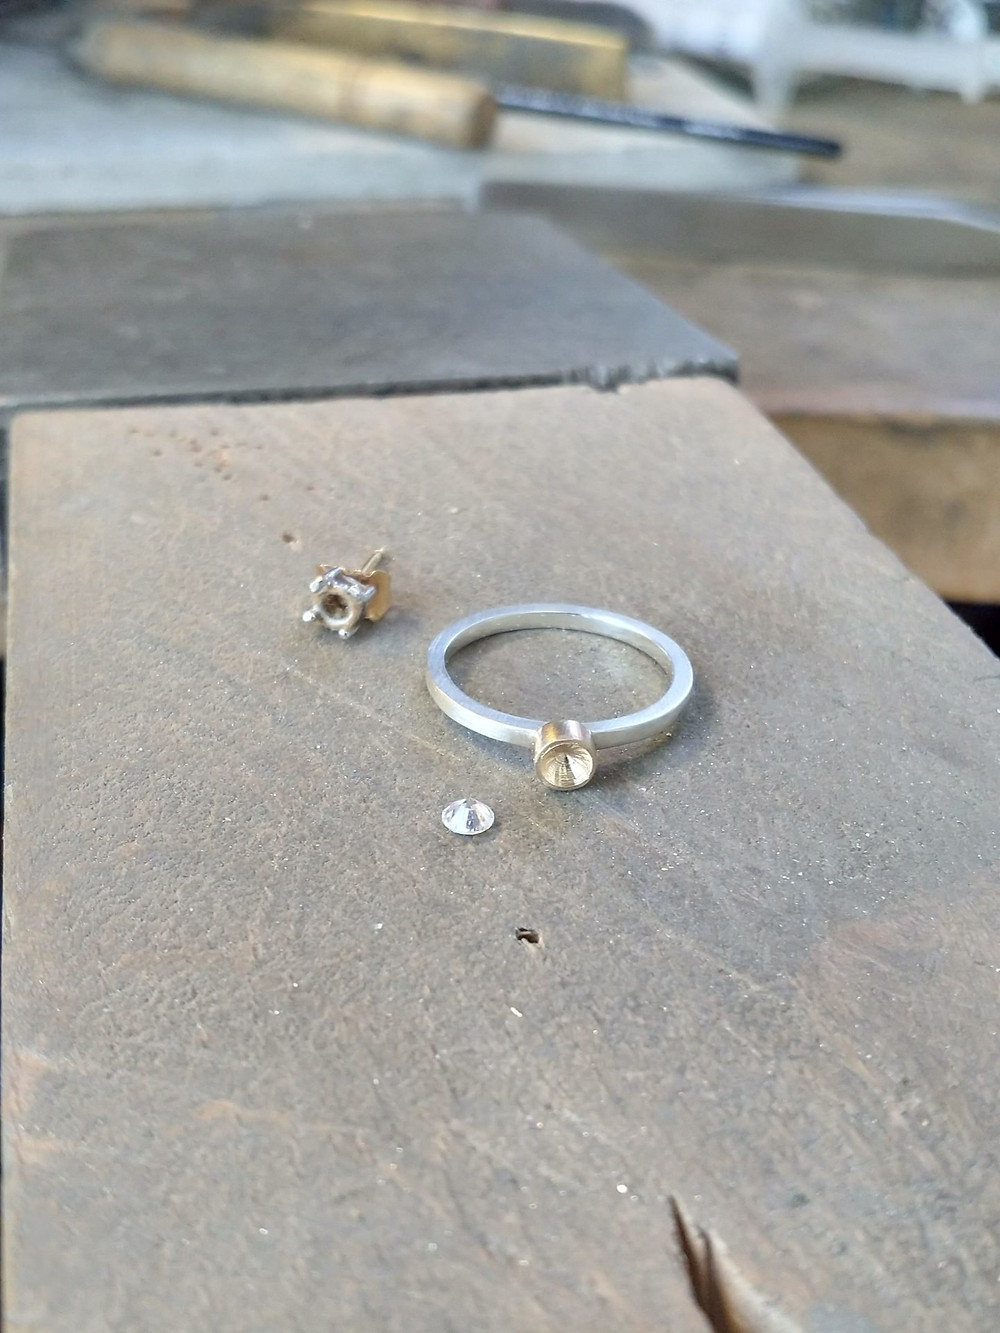 Jewellery workbench - remodelling ring